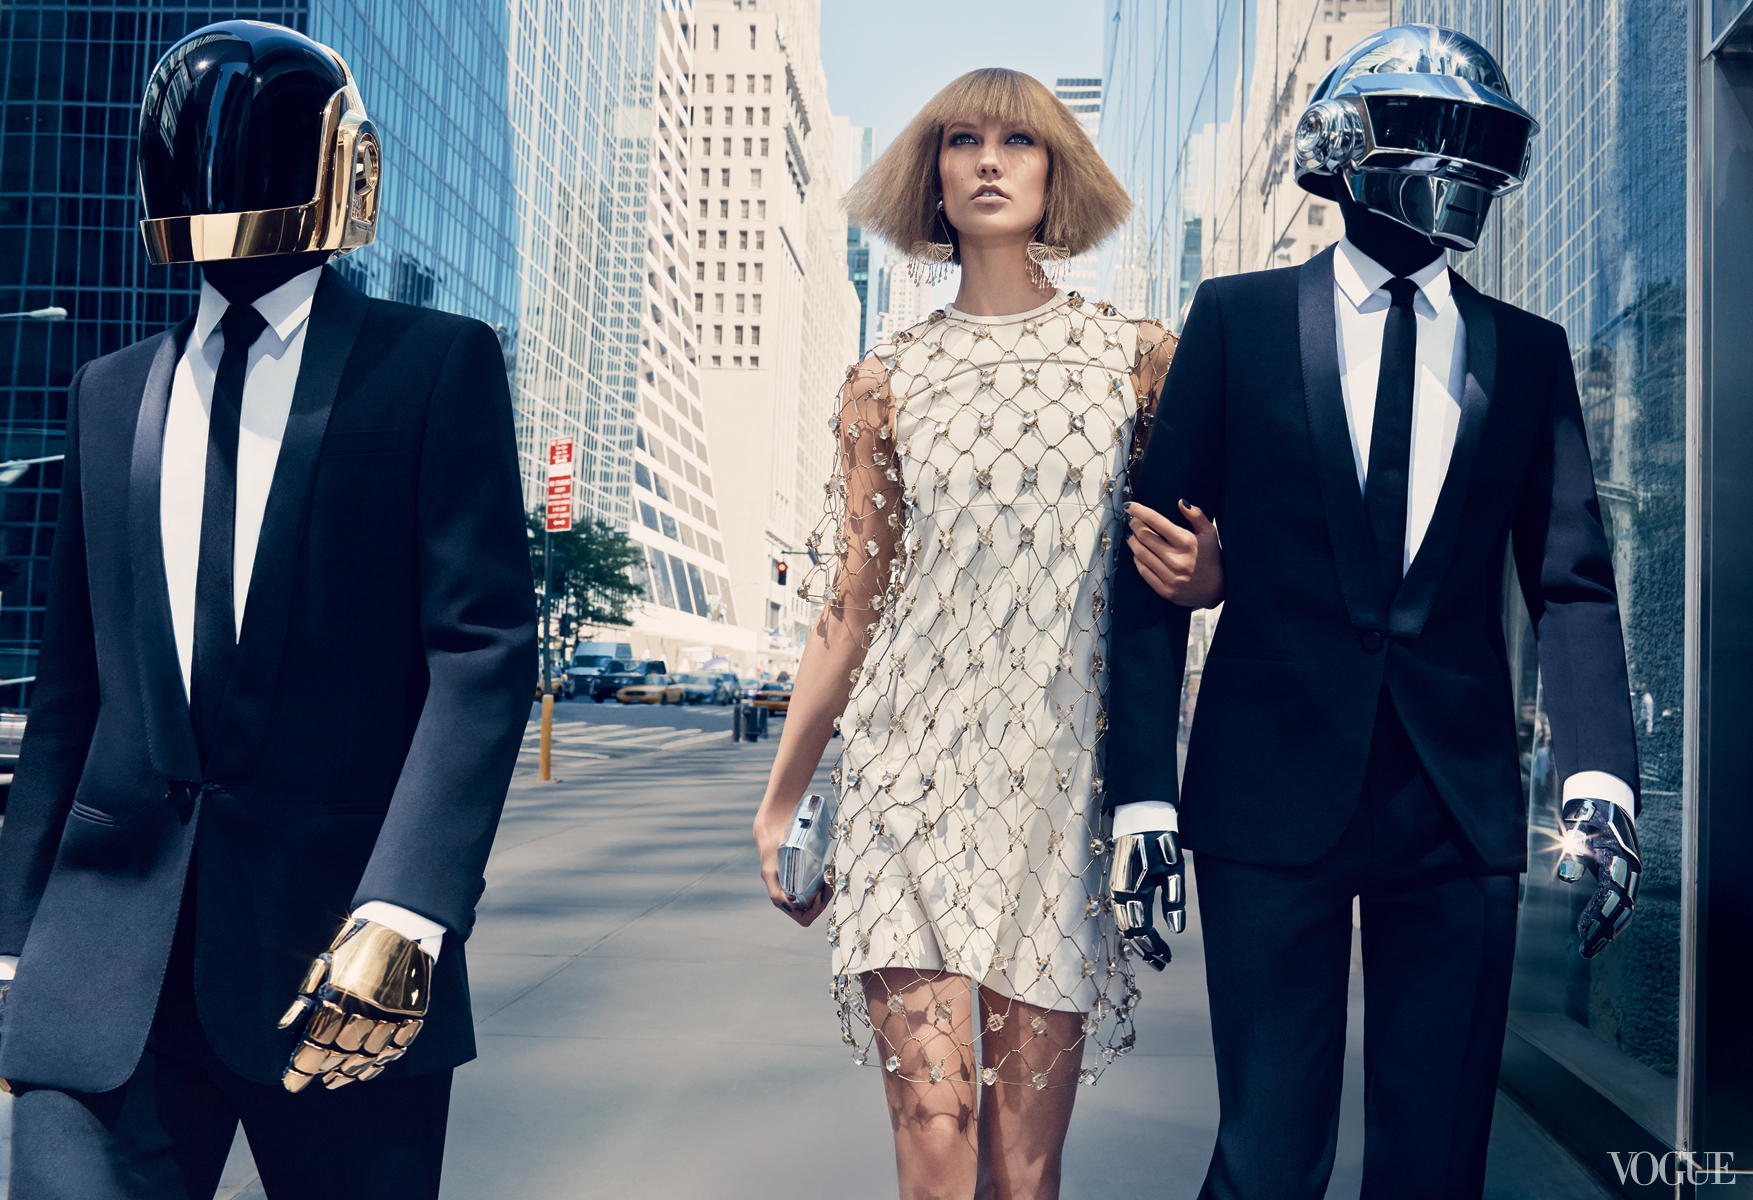 Vogue August 2013  Karlie Kloss & Daft Punk  Photographed by Craig McDean  Styled by Tabitha Simmons